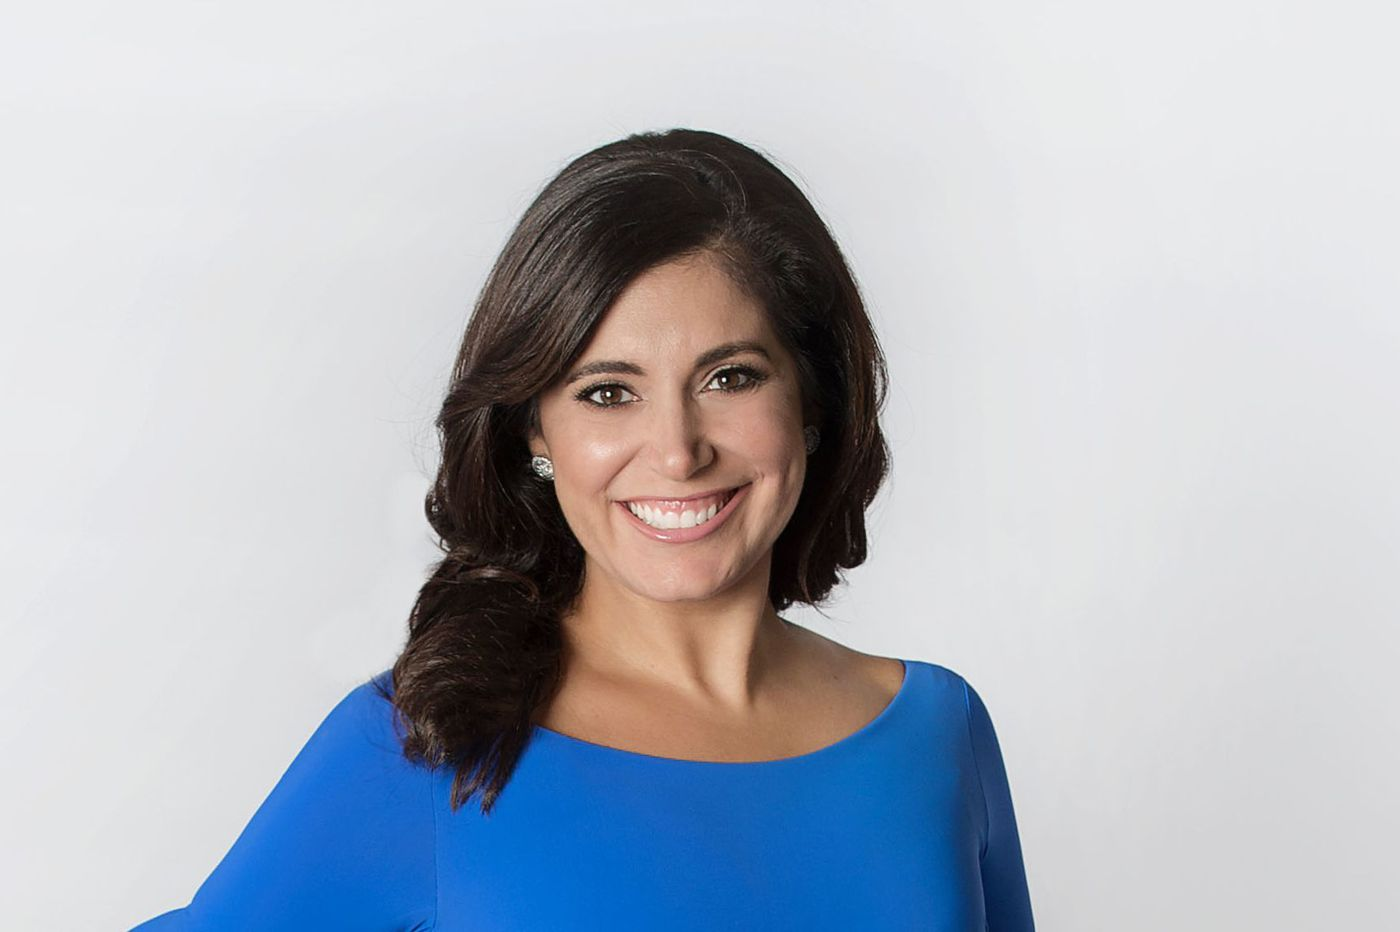 Alicia Vitarelli back at 6ABC after two-month leave, shares